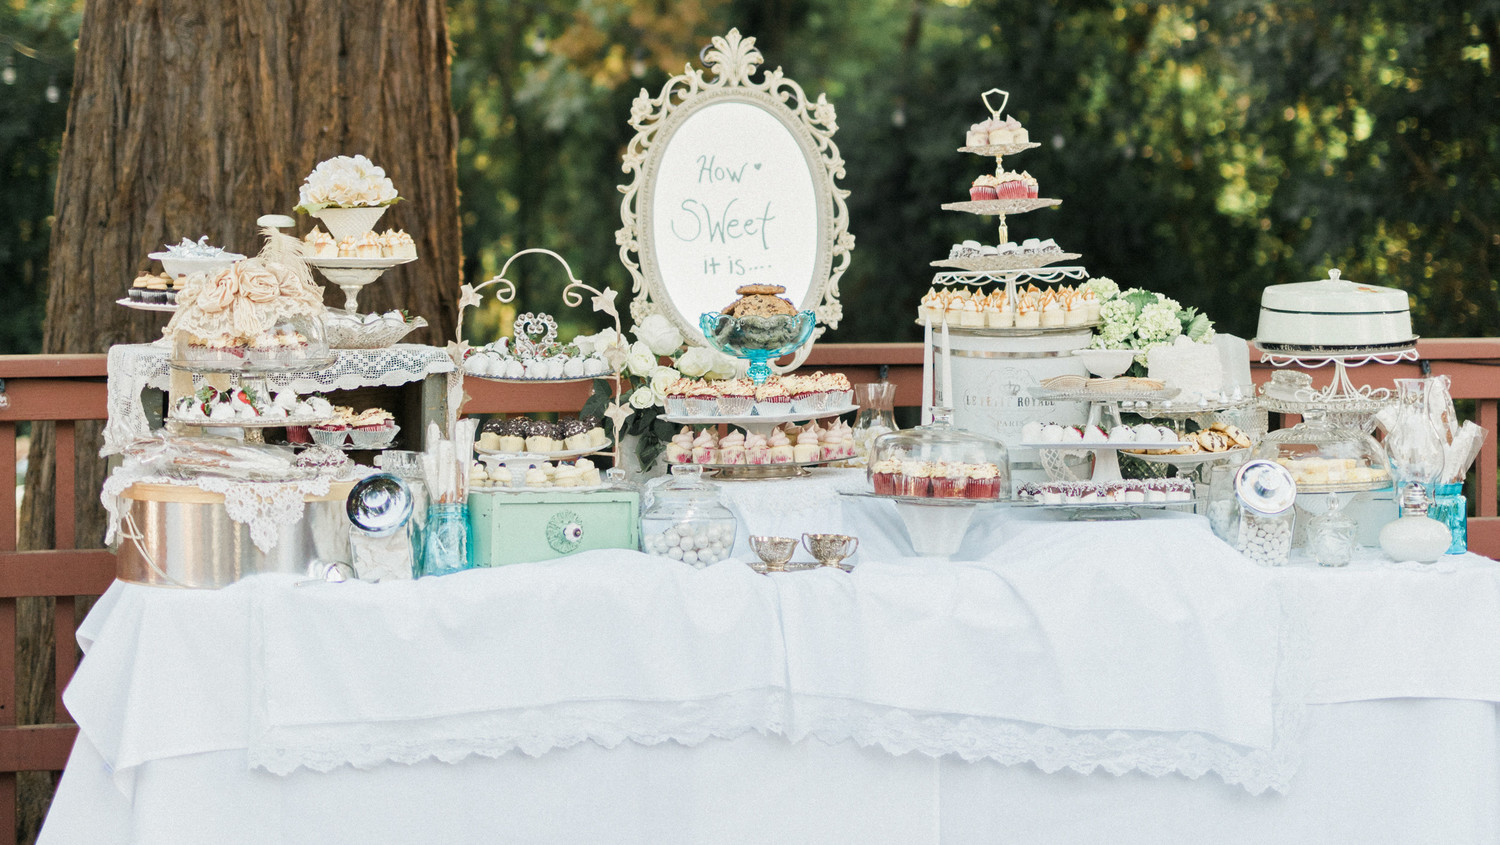 Wedding Cake Table.How To Create The Ultimate Wedding Dessert Table Martha Stewart